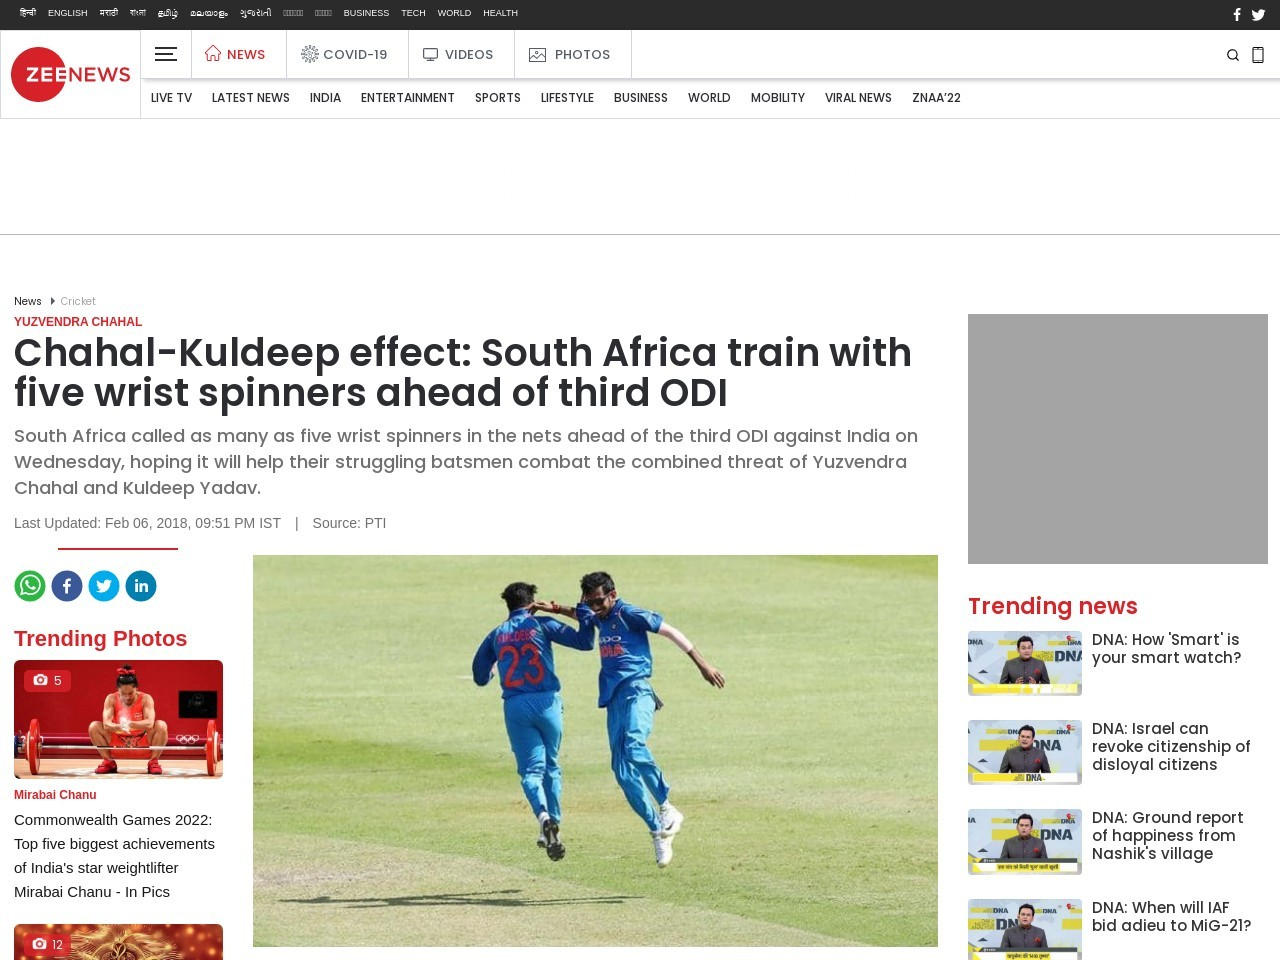 Chahal-Kuldeep effect: South Africa train with five wrist spinners ahead of third ODI